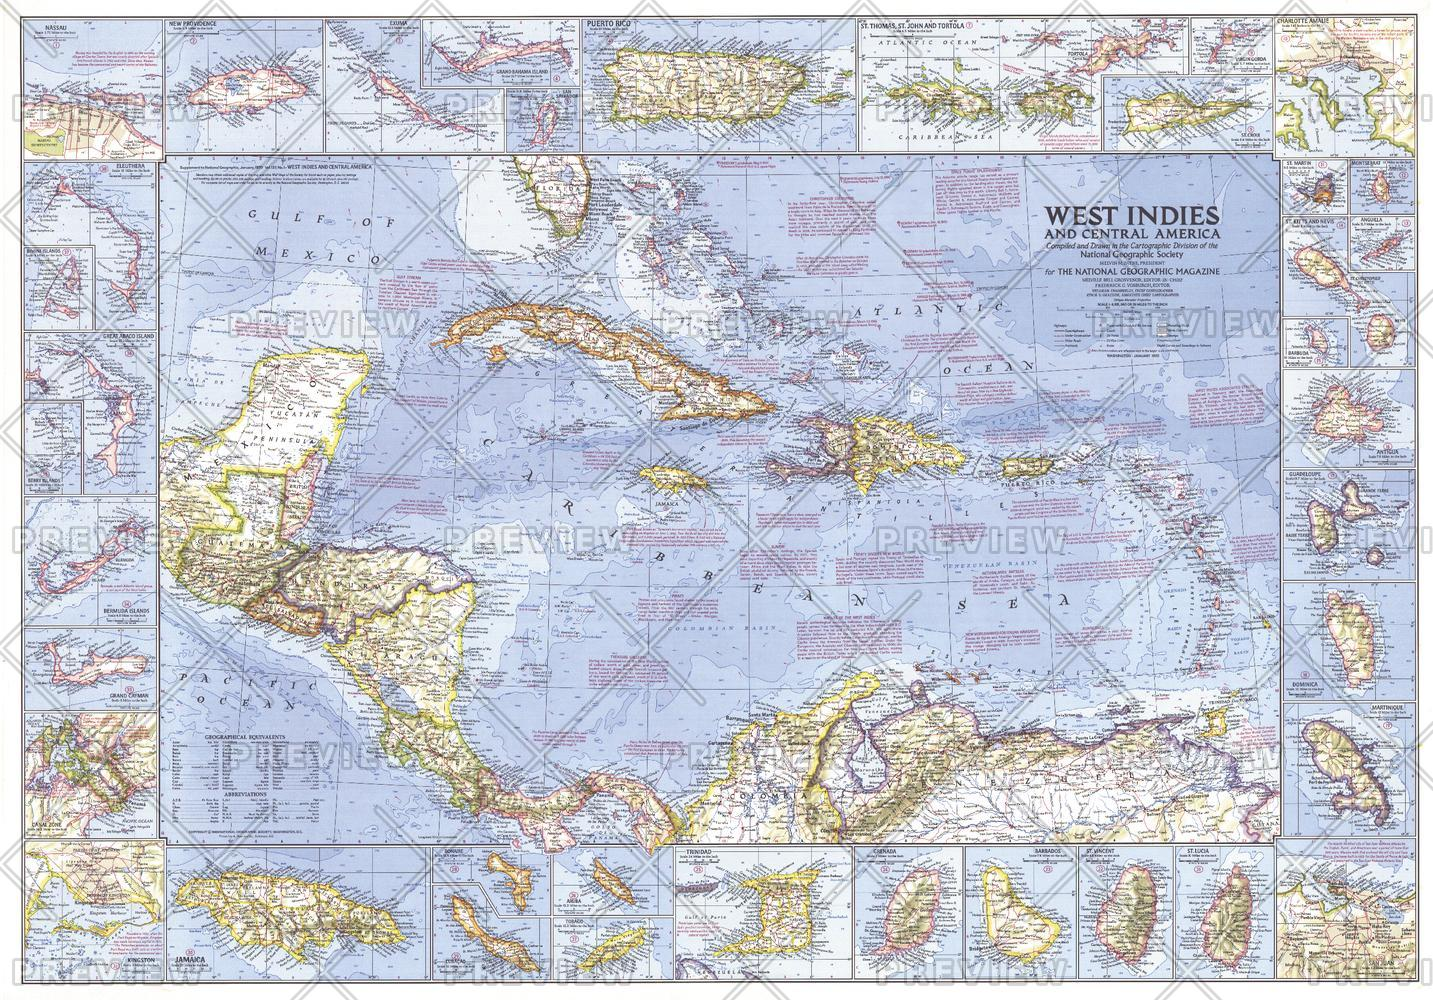 West Indies and Central America  -  Published 1970